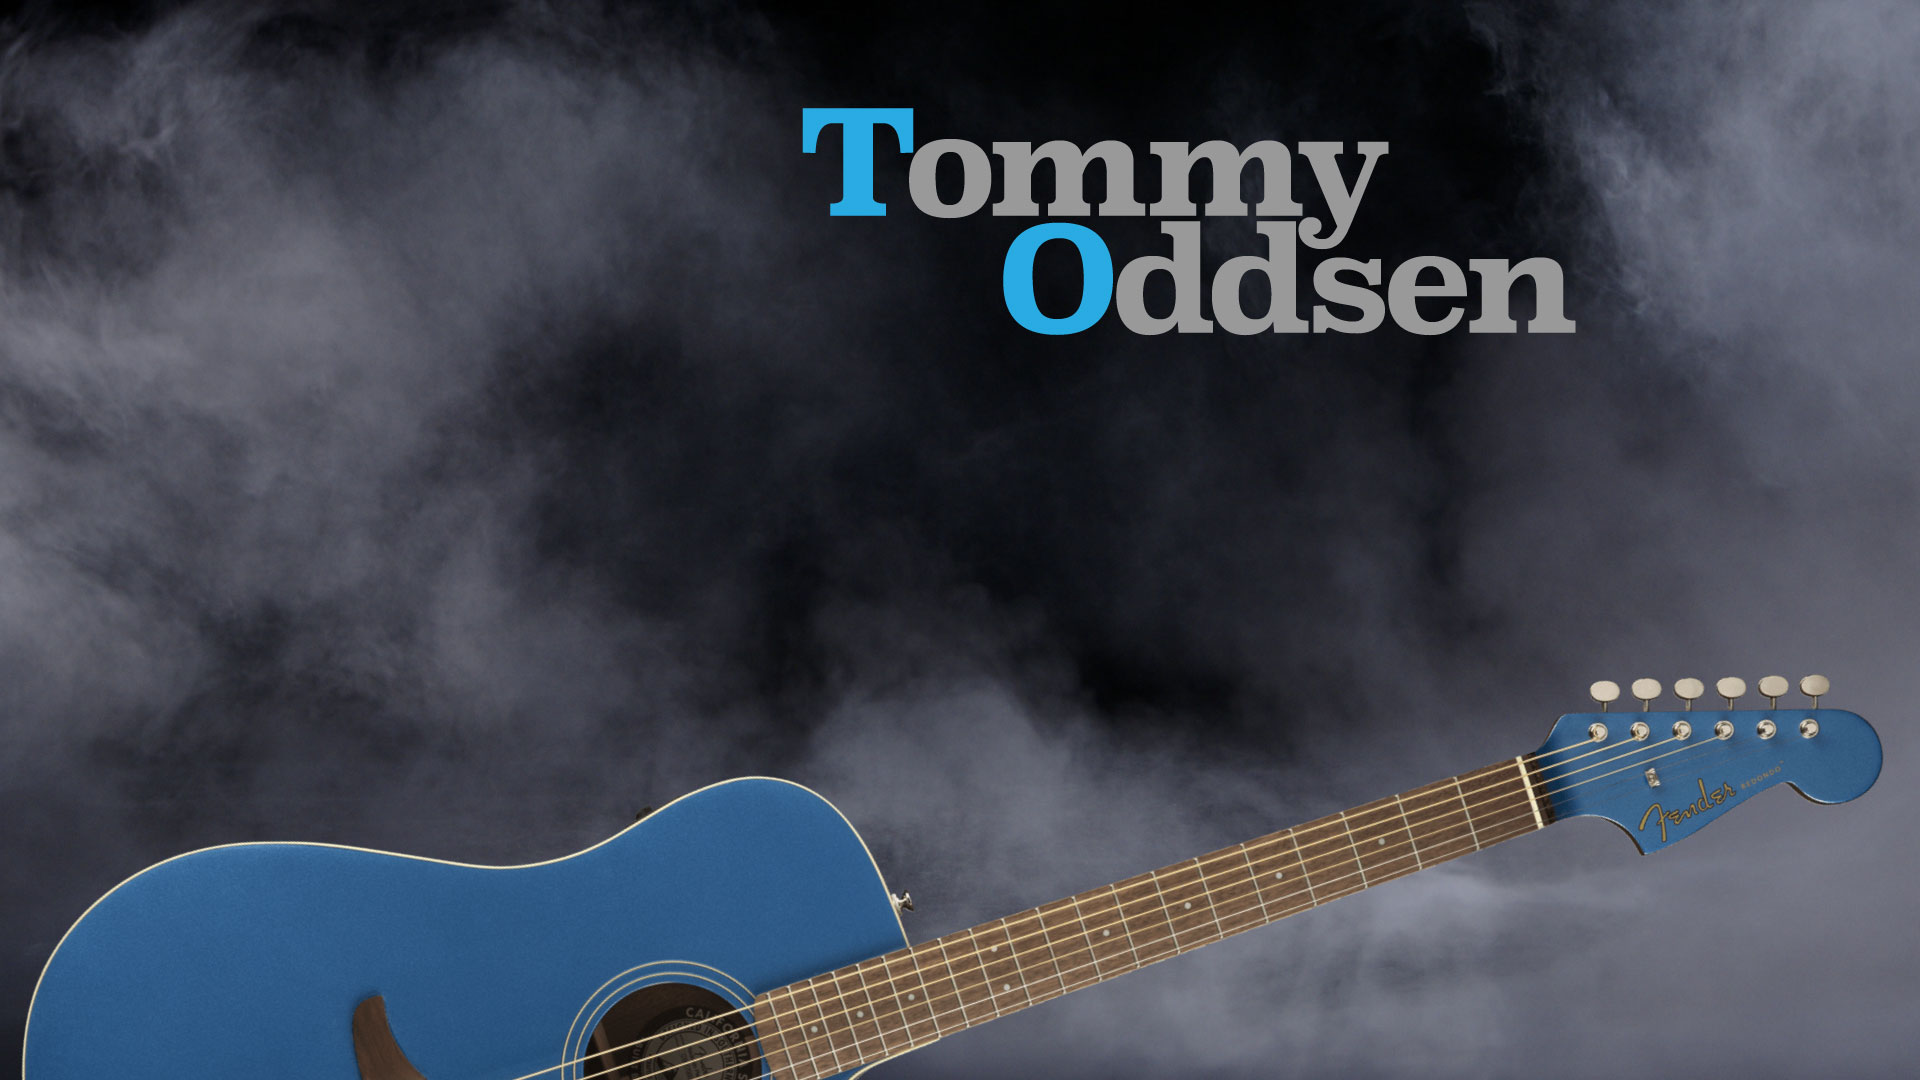 Tommy Oddsen logo and guitar